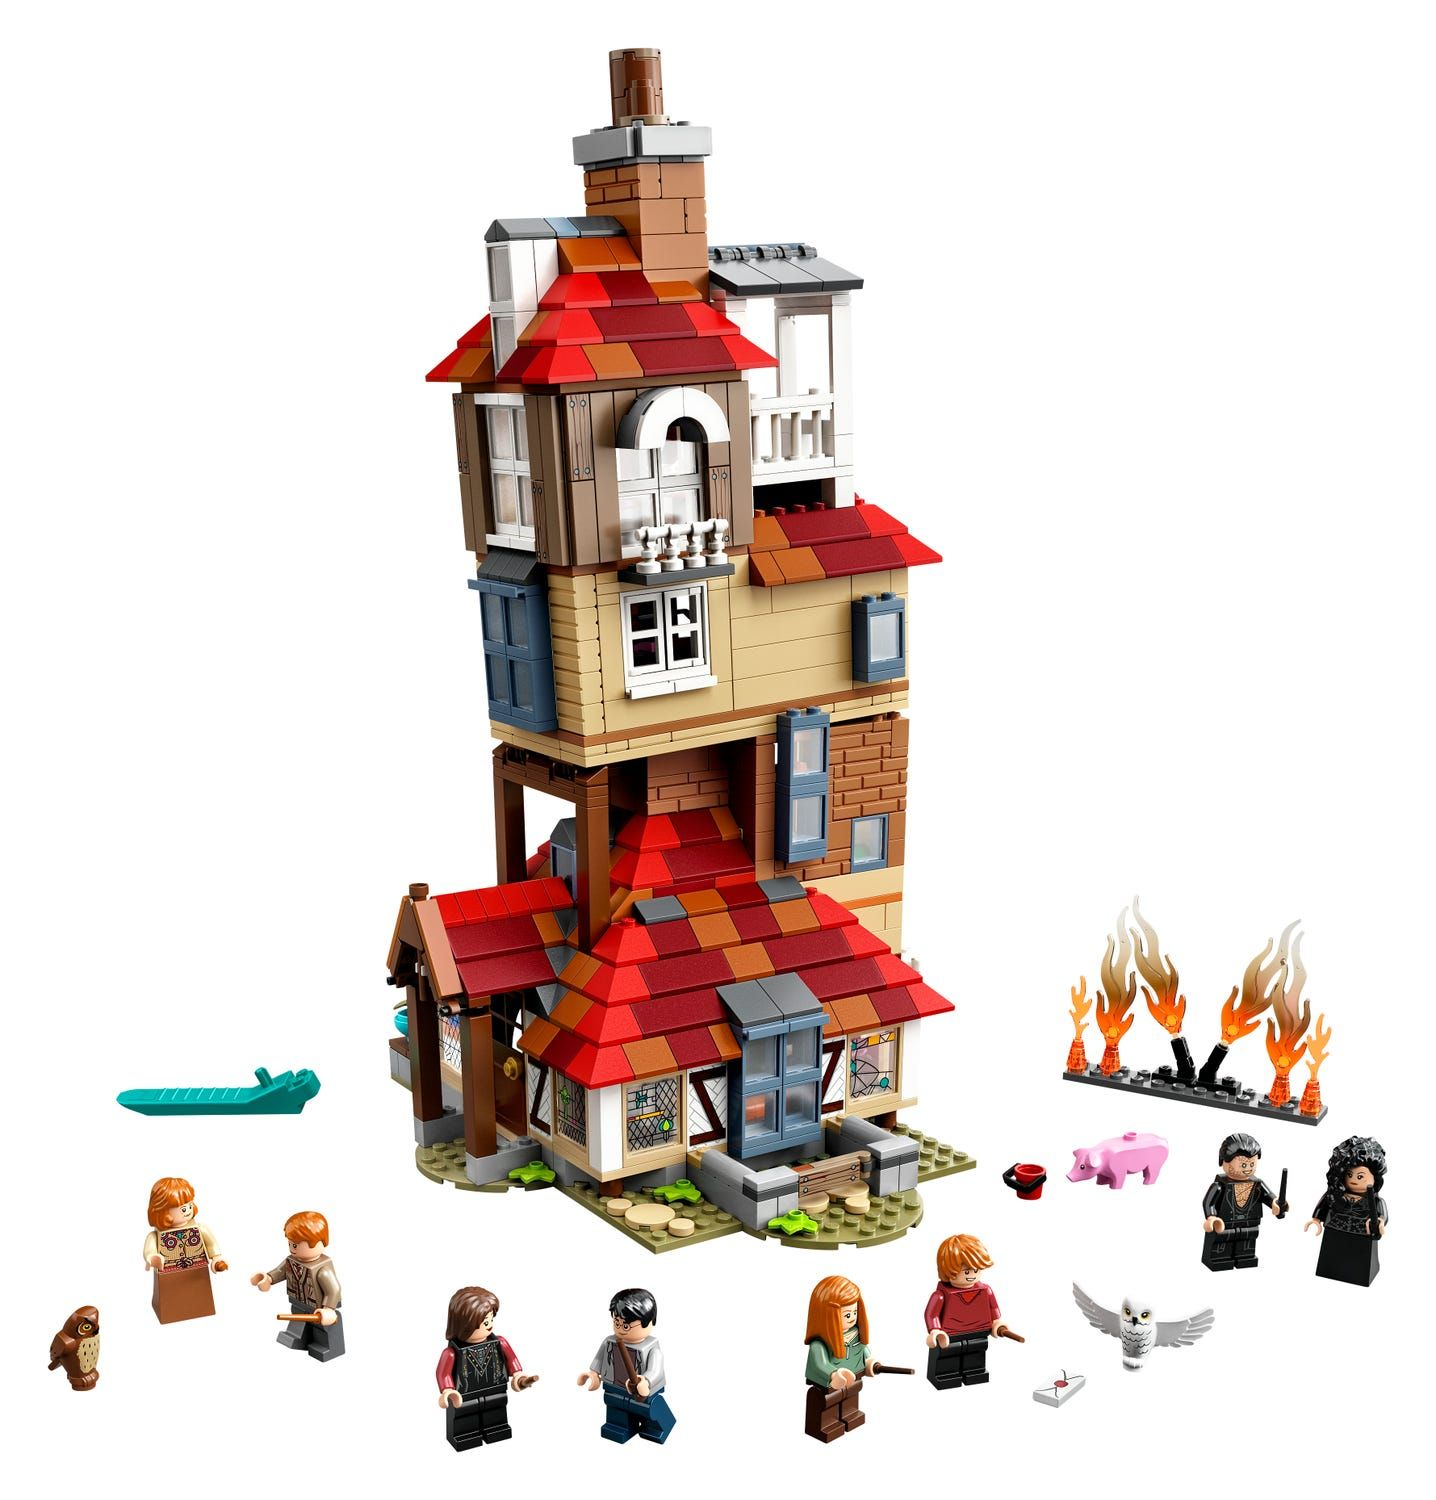 Attack On The Burrow 75980 Harry Potter Buy Online At The Official Lego Shop Us Harry Potter Lego Sets Lego Harry Potter Harry Potter Set